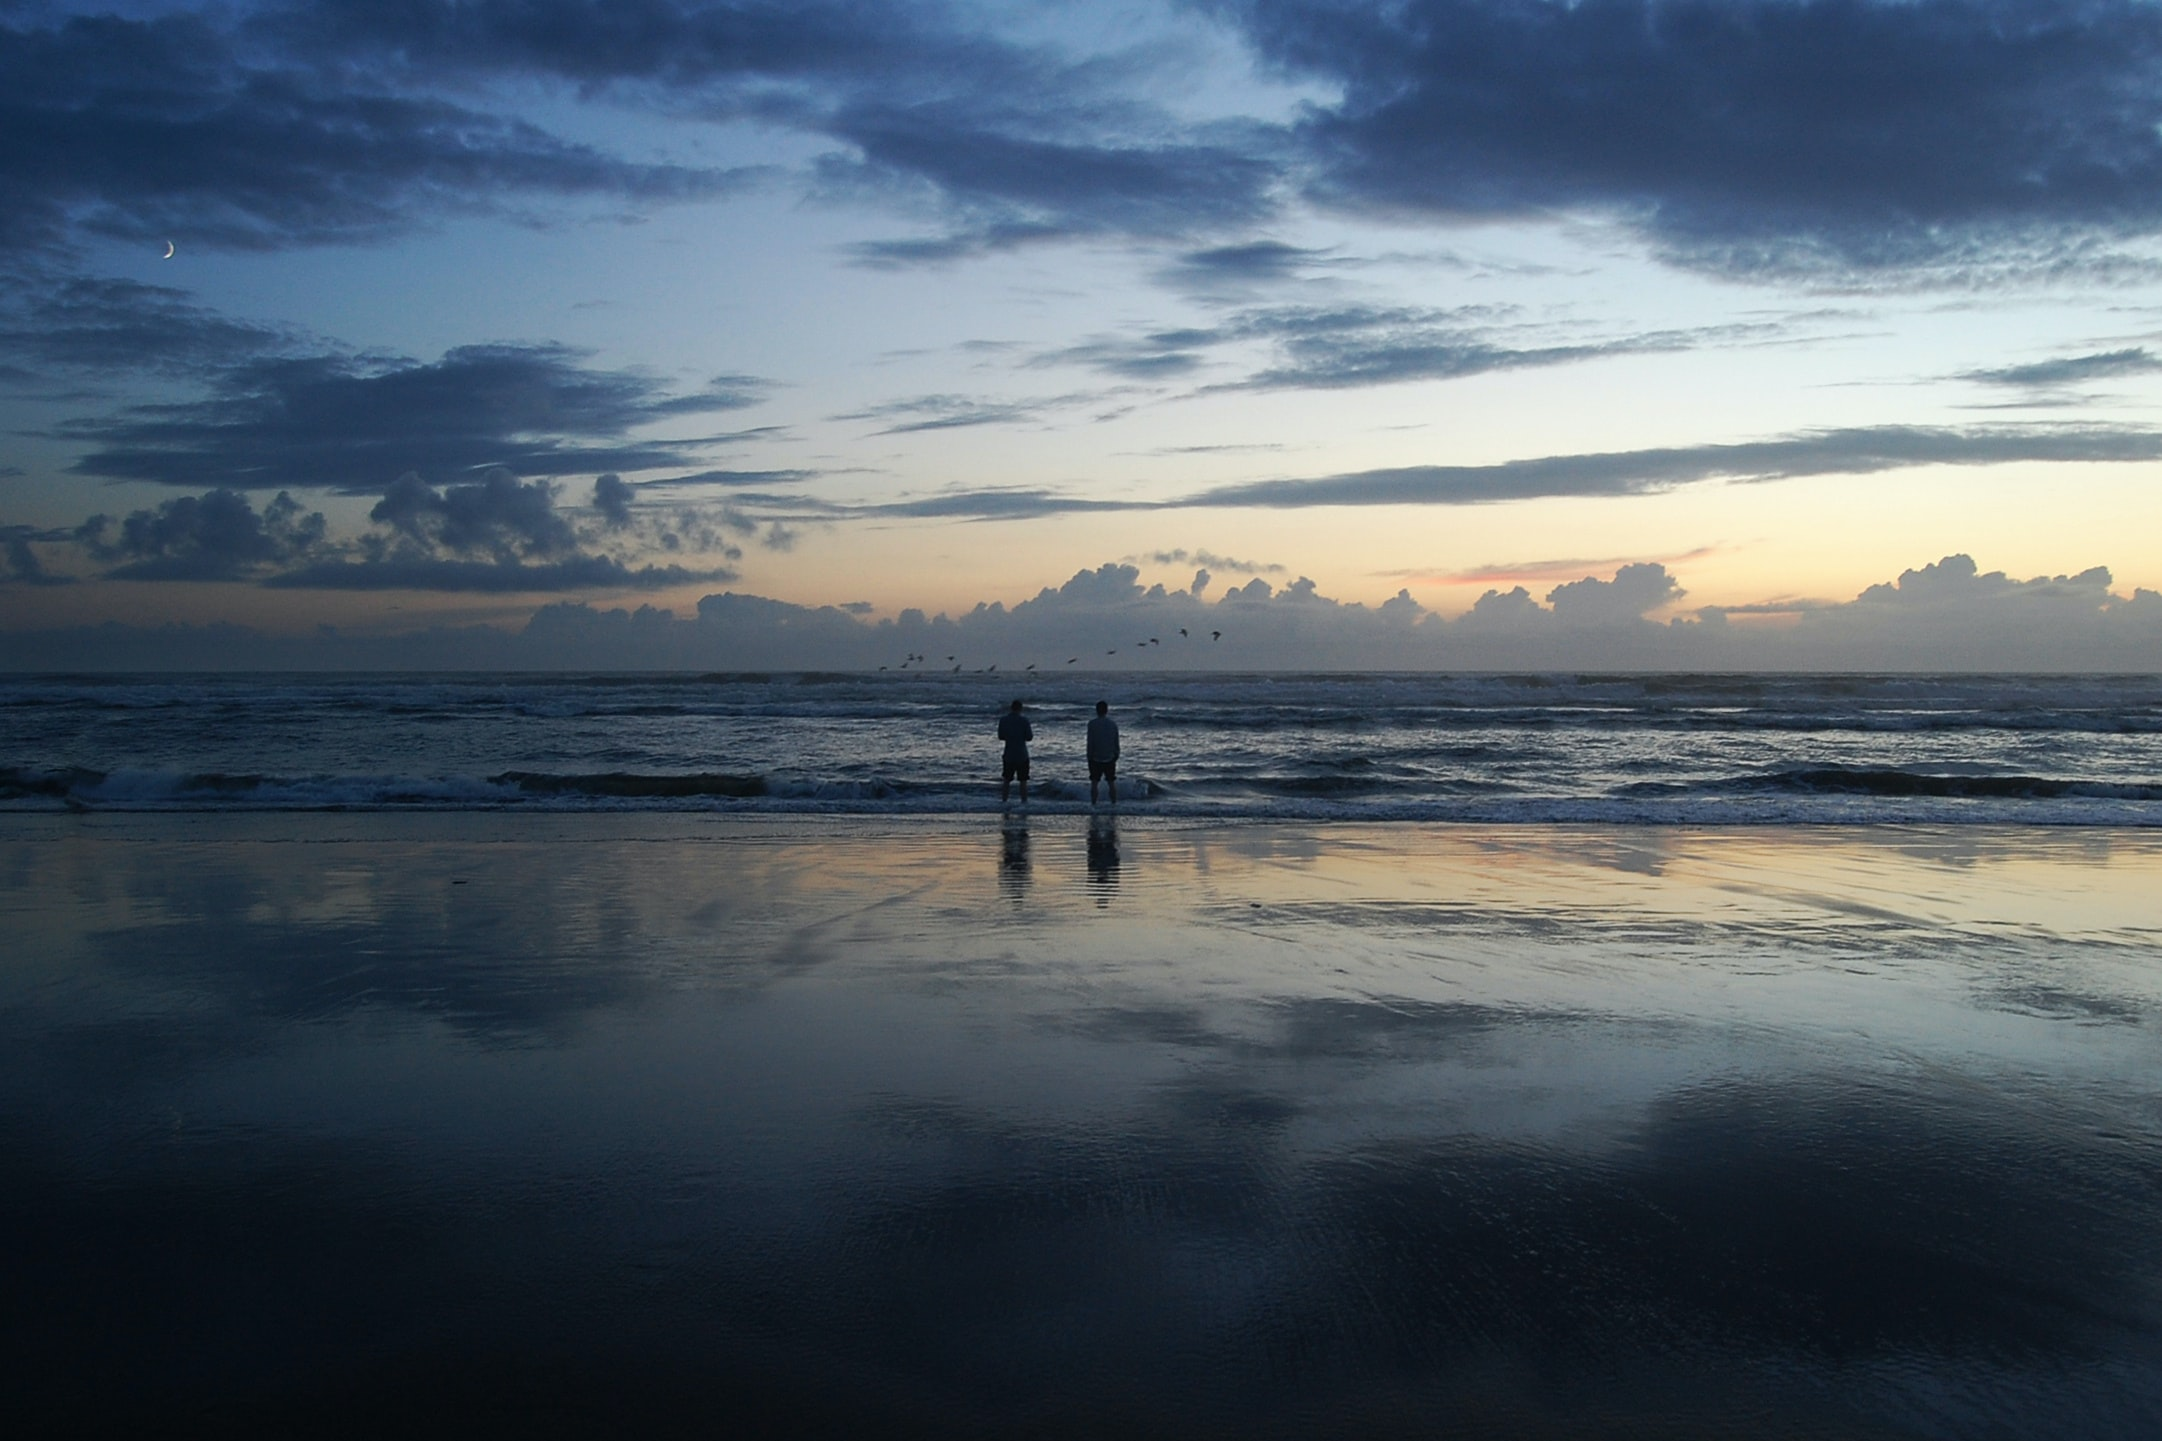 silhouette of two person standing beside seashore